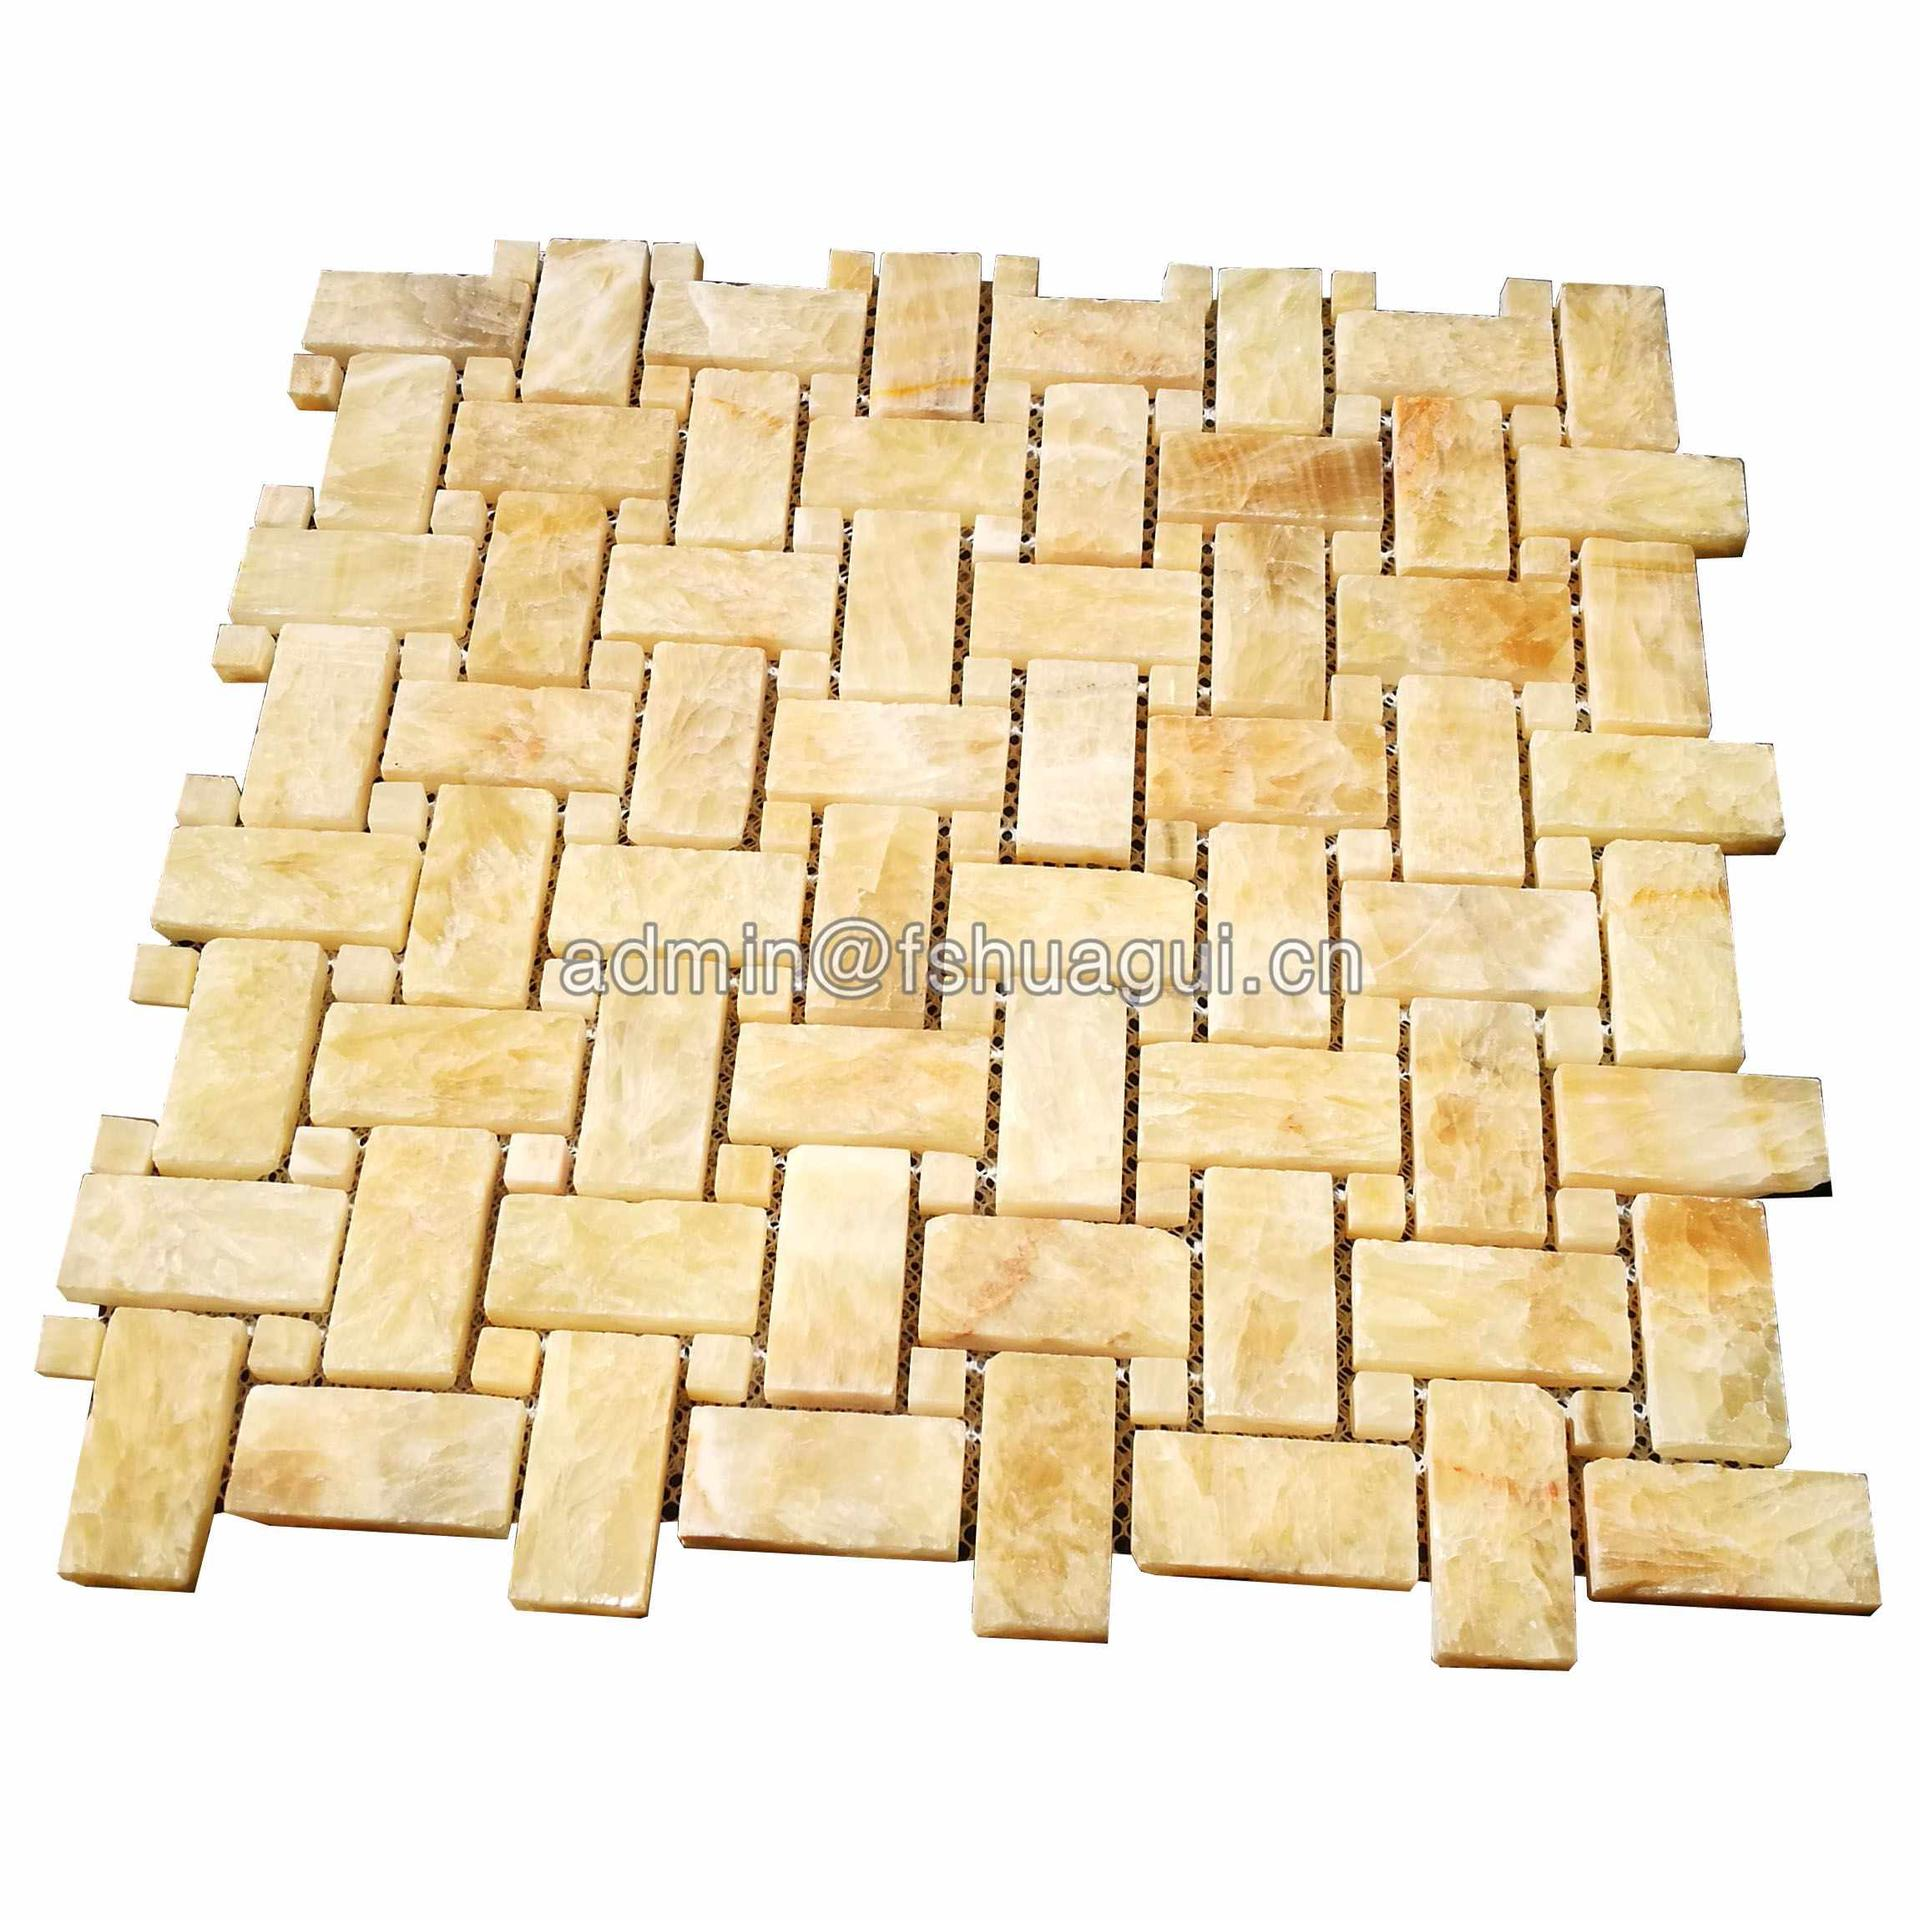 Natural beige color marble stone mosaic tile for wall decoration